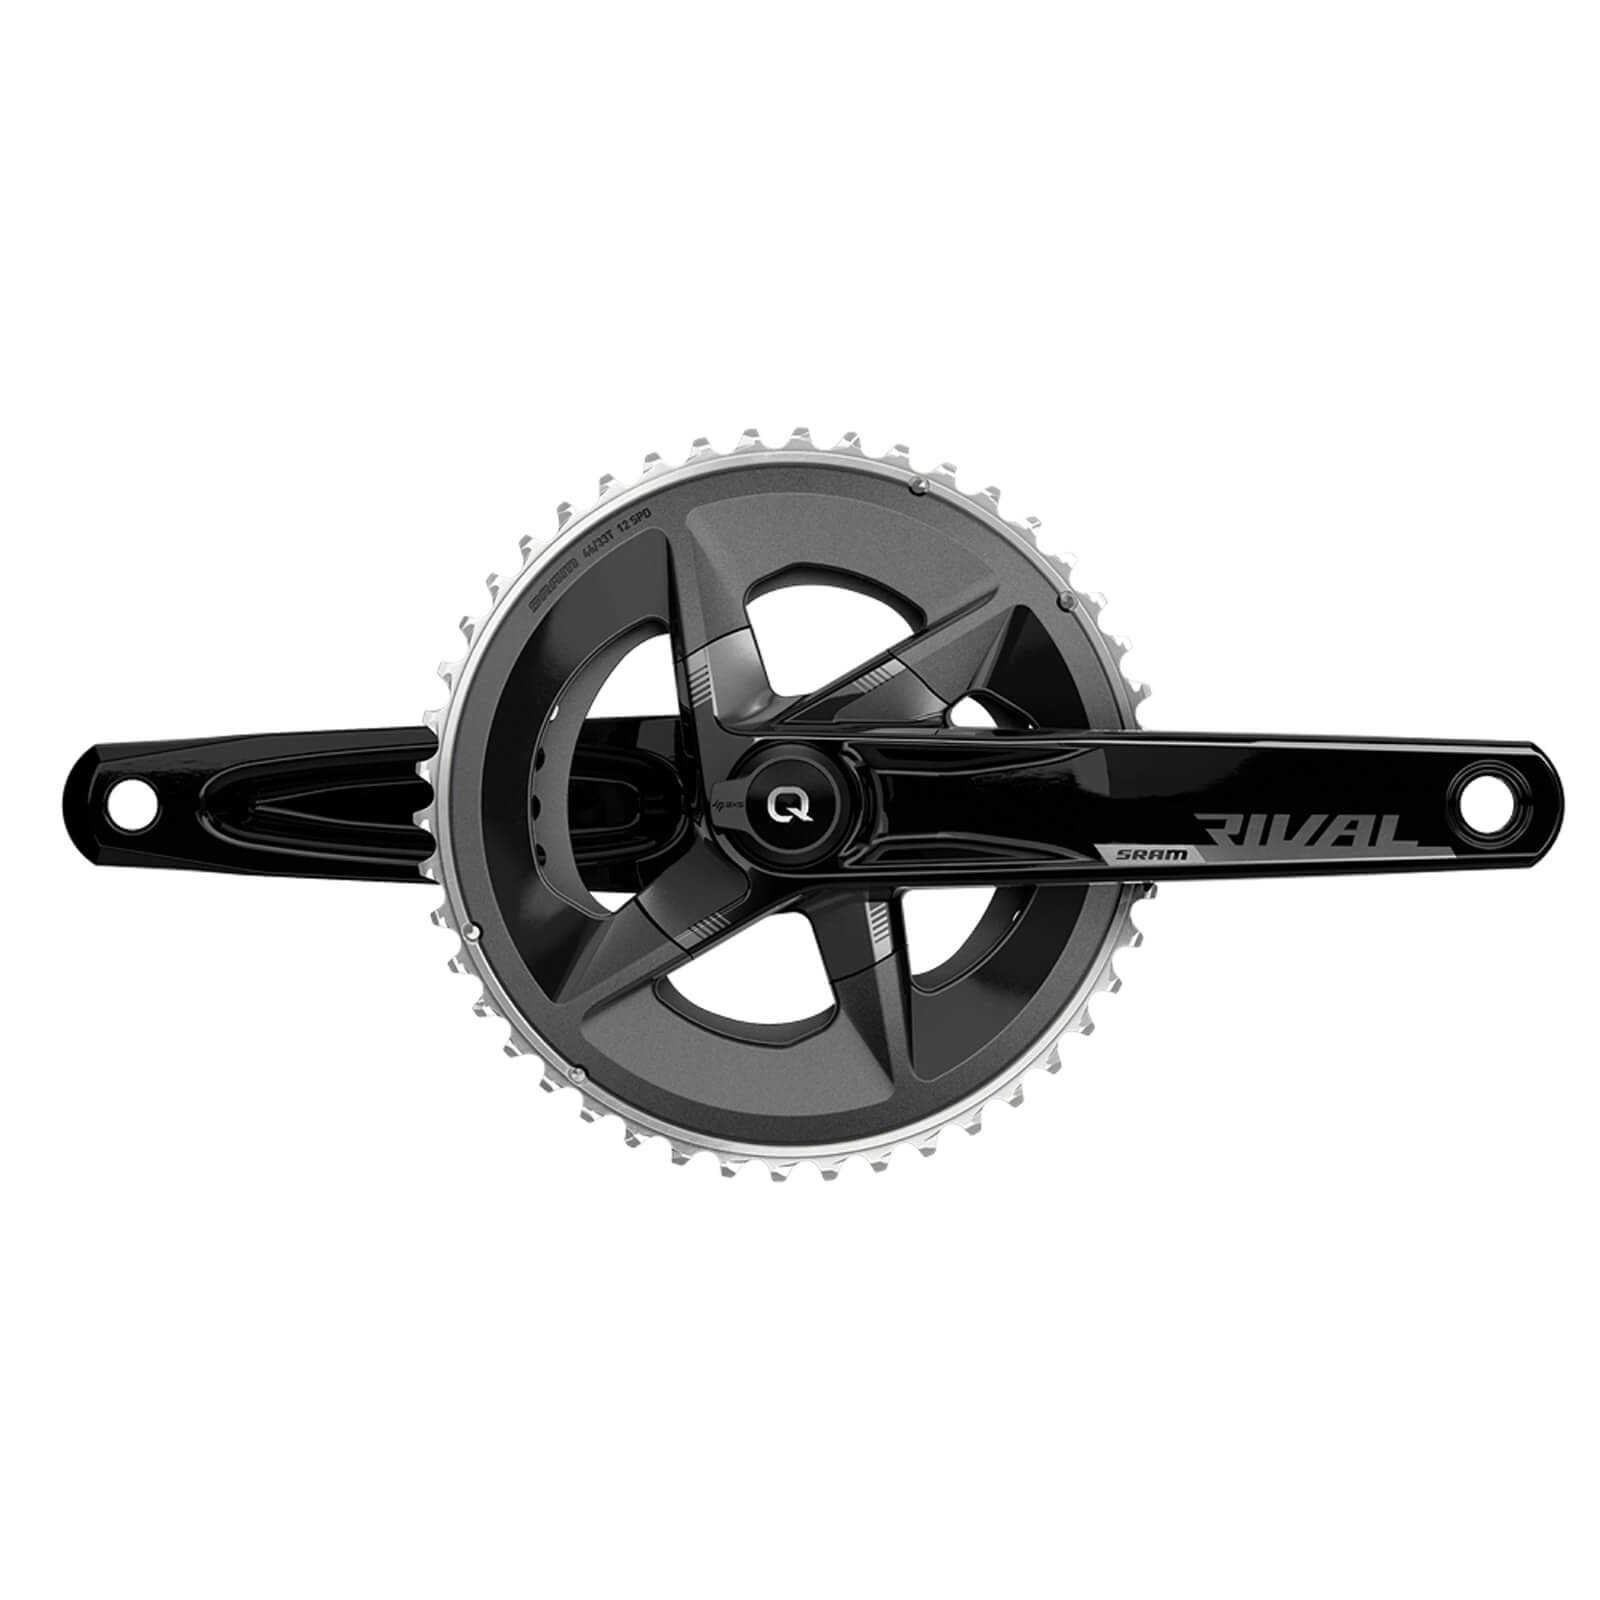 Sram Rival Axs Power Meter Chainset - 48/35 - 172.5mm